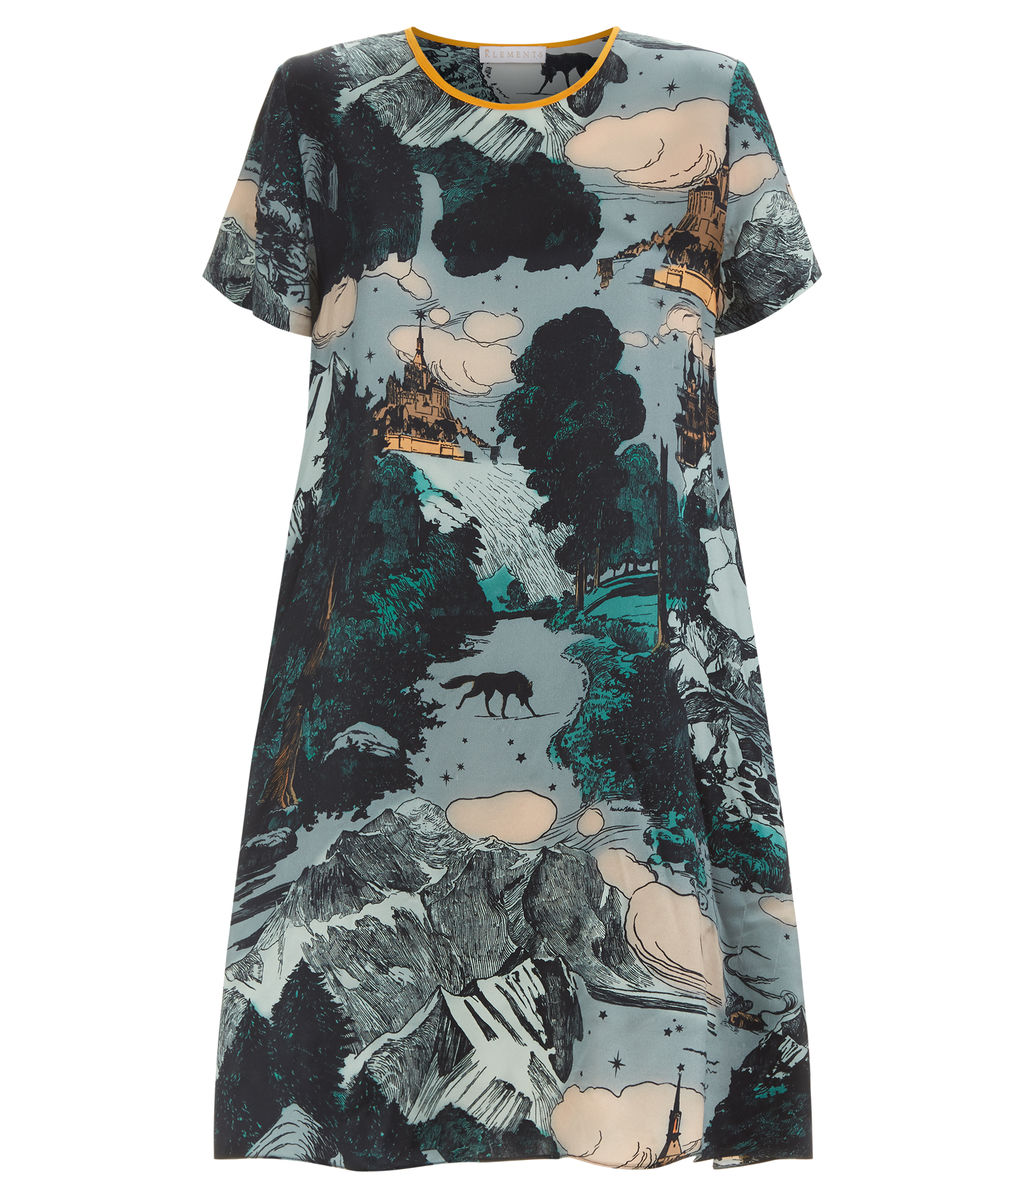 FRIEDA DRESS LE MONT SAINT MICHEL PRINT - product images  of